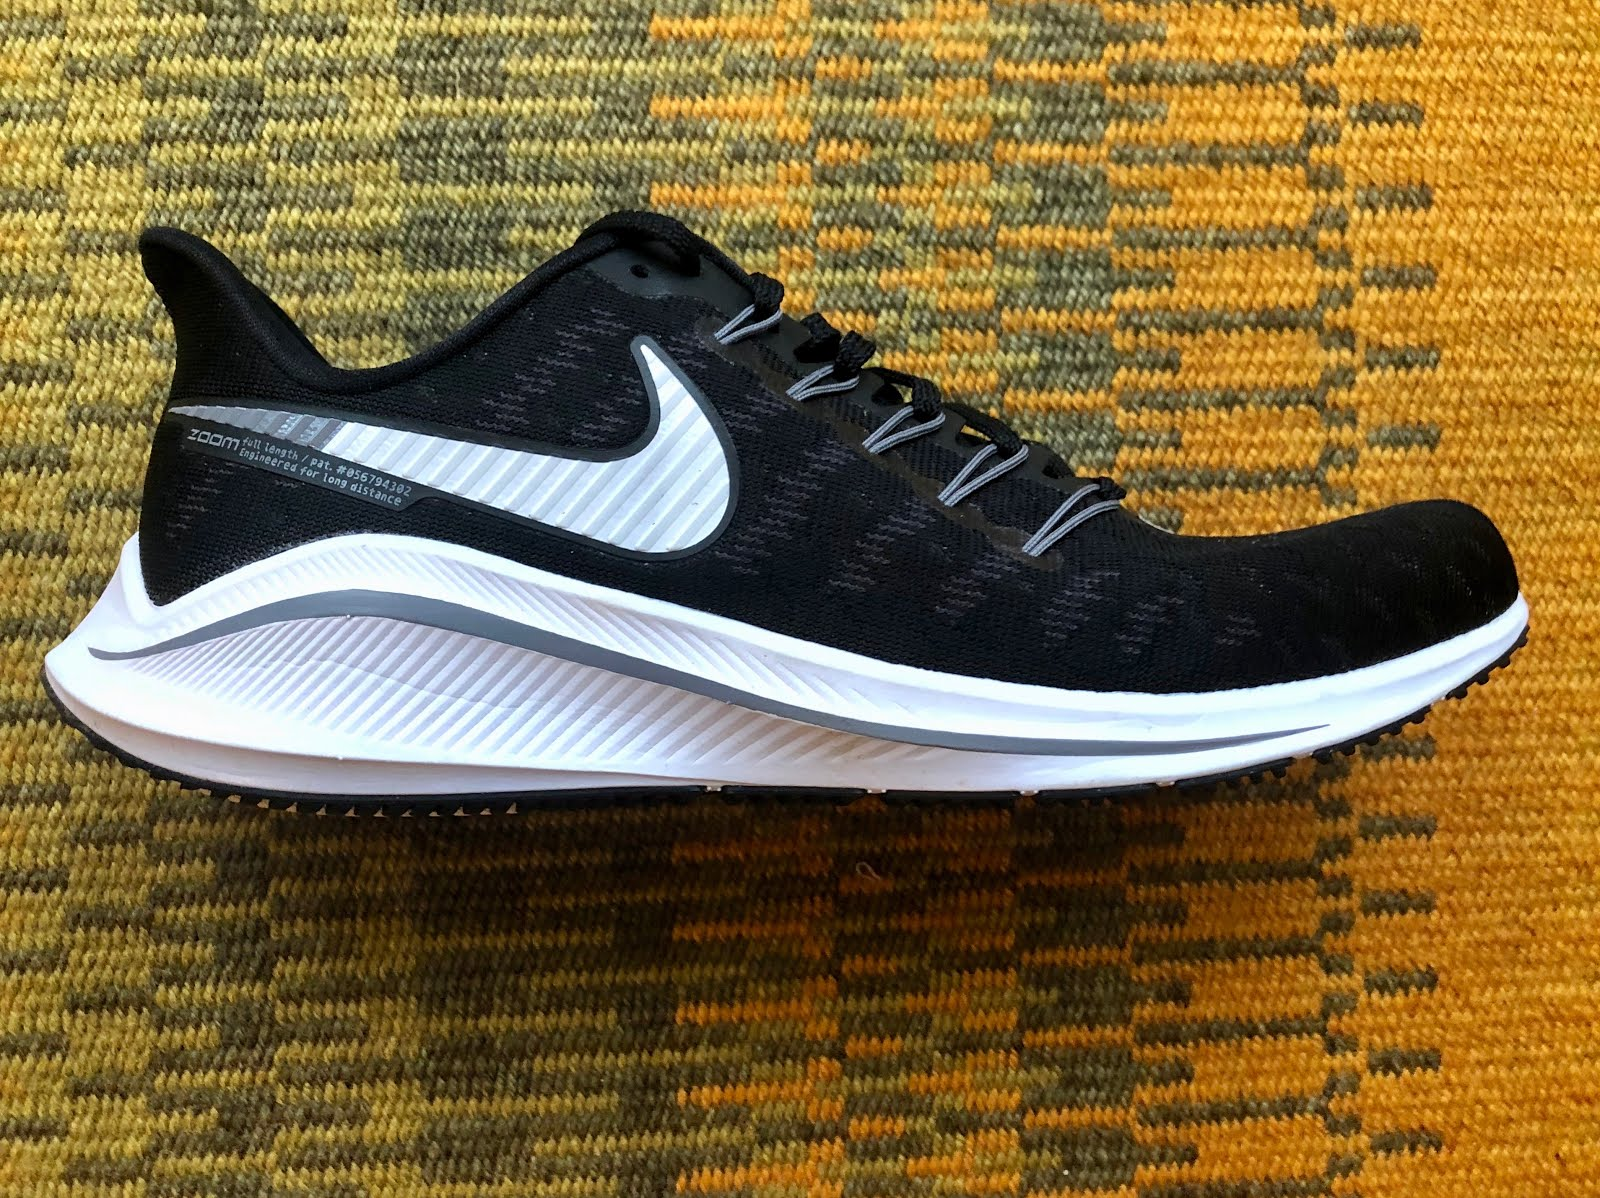 0d1ad28d4883 Road Trail Run  Nike Zoom Vomero 14 Review  Fast and Responsive ...